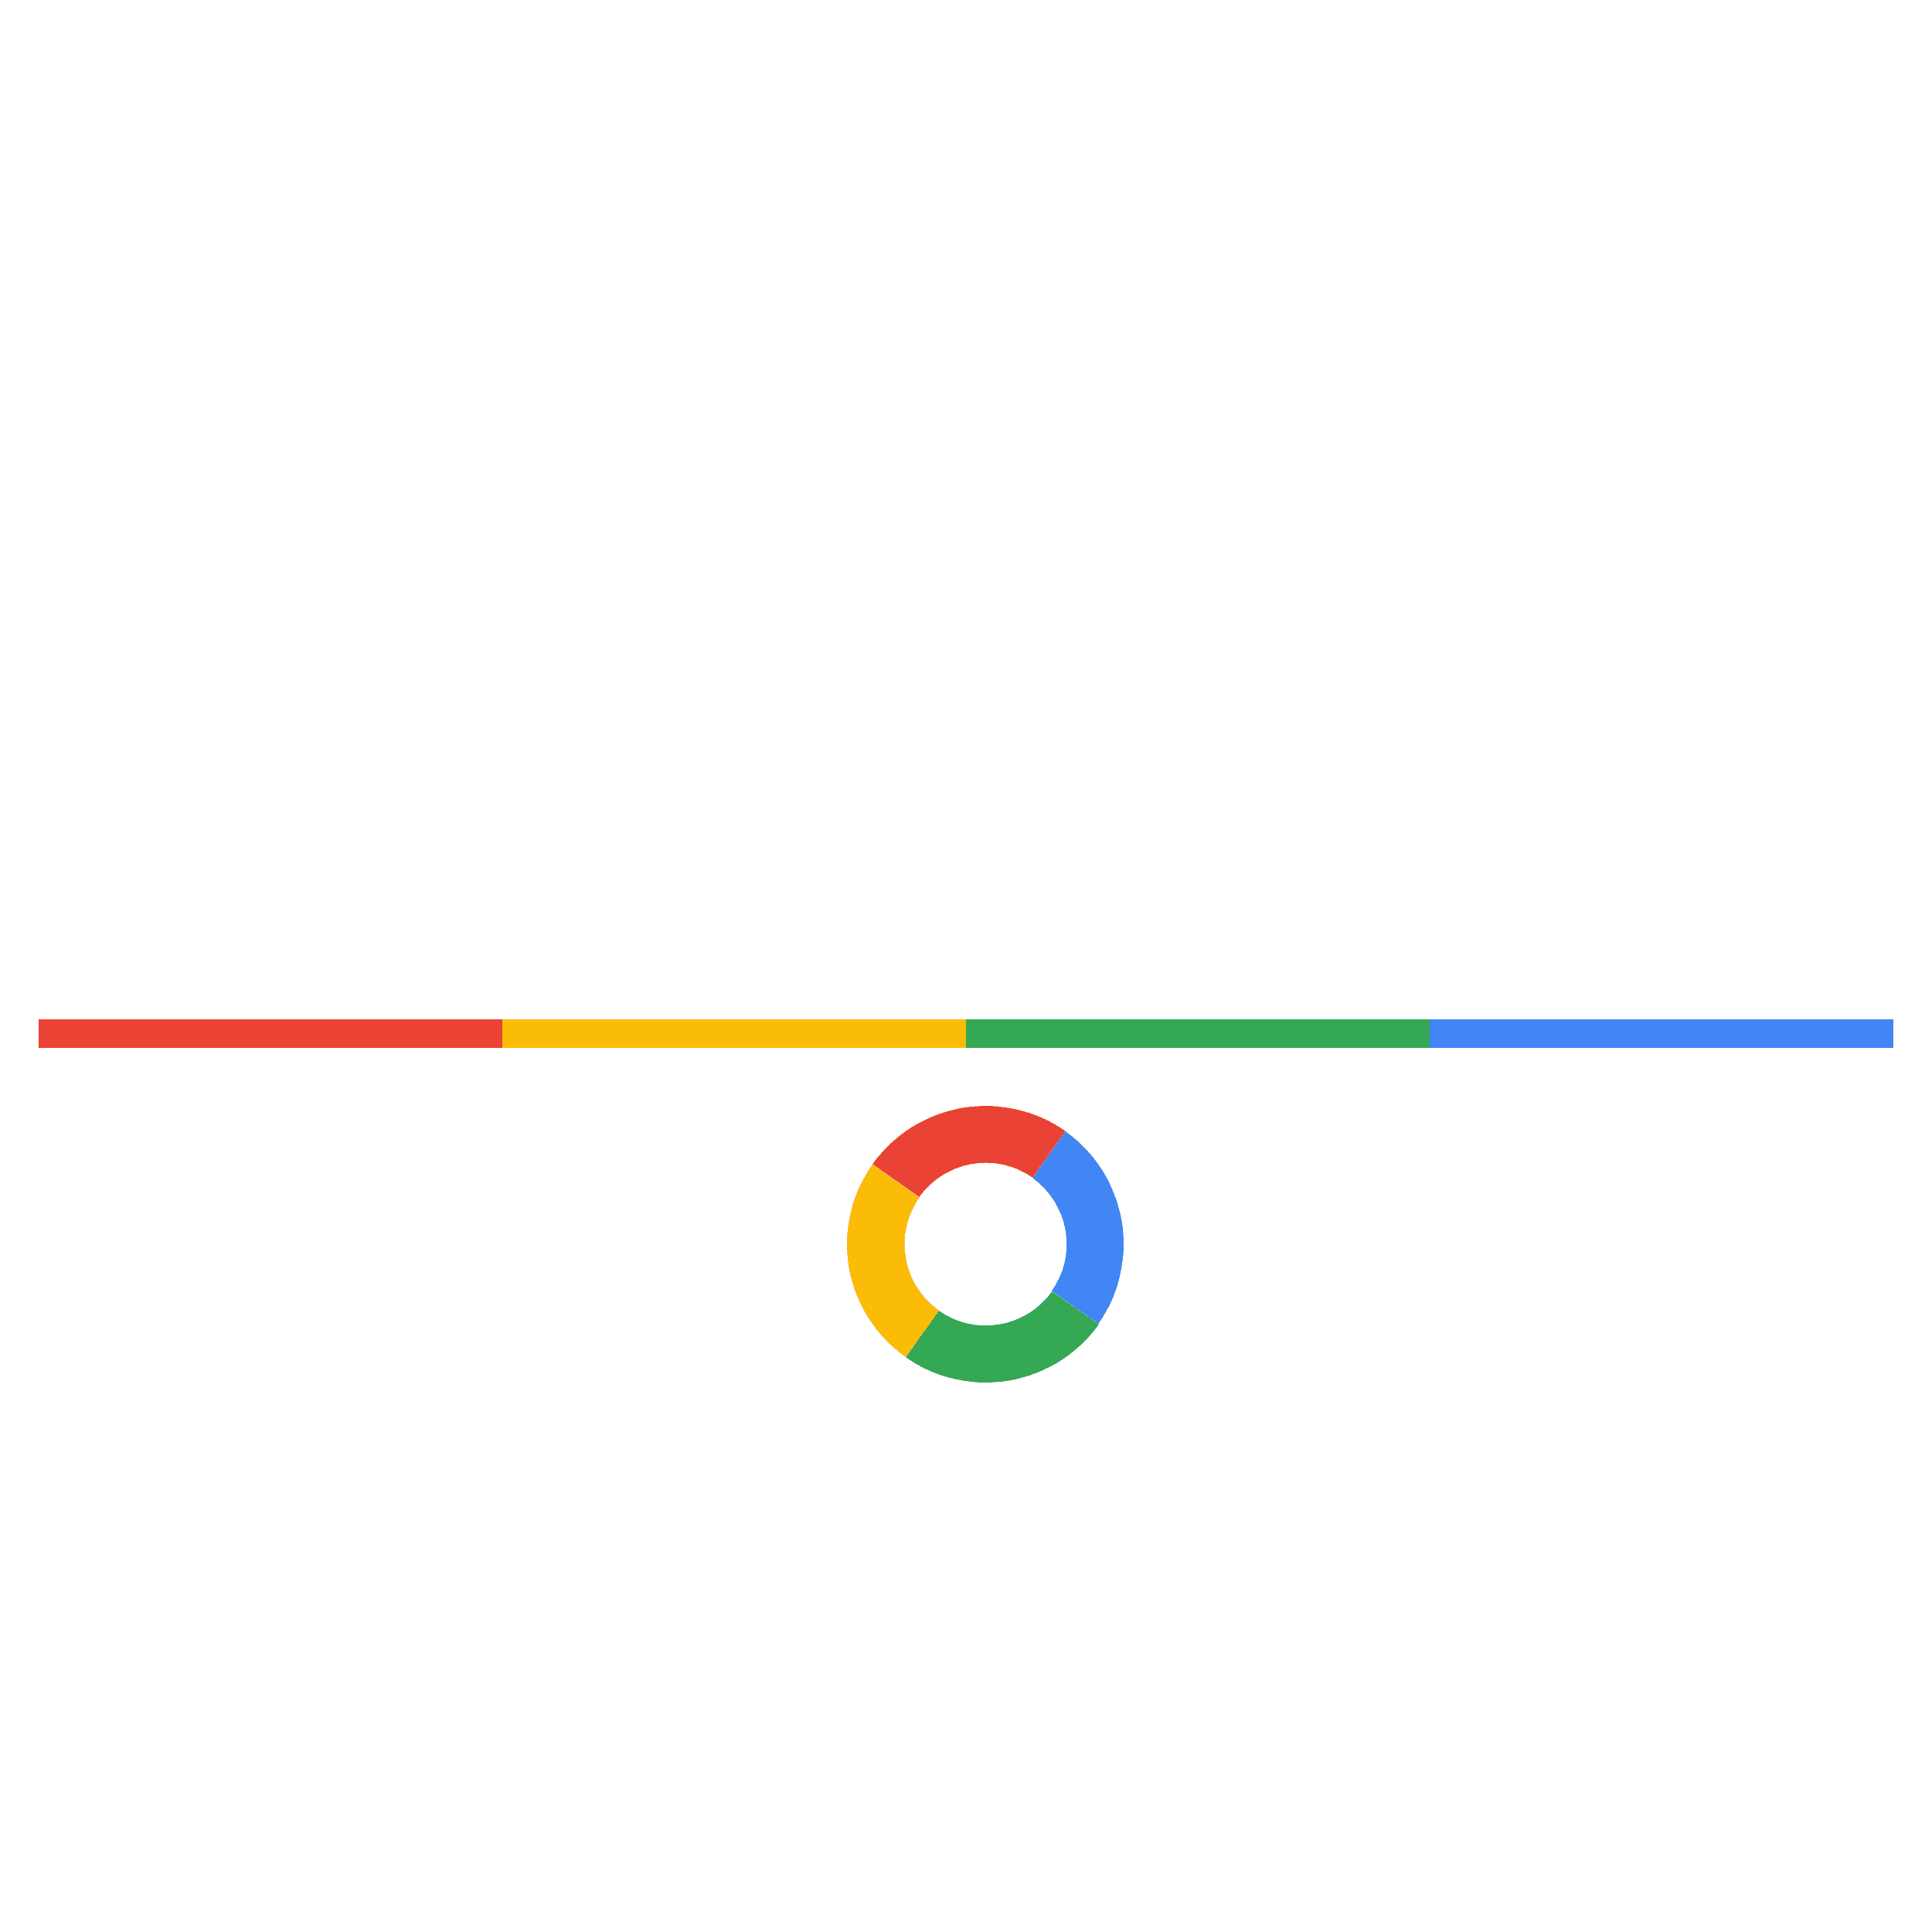 Chrome Unboxed – The Latest Chrome OS News